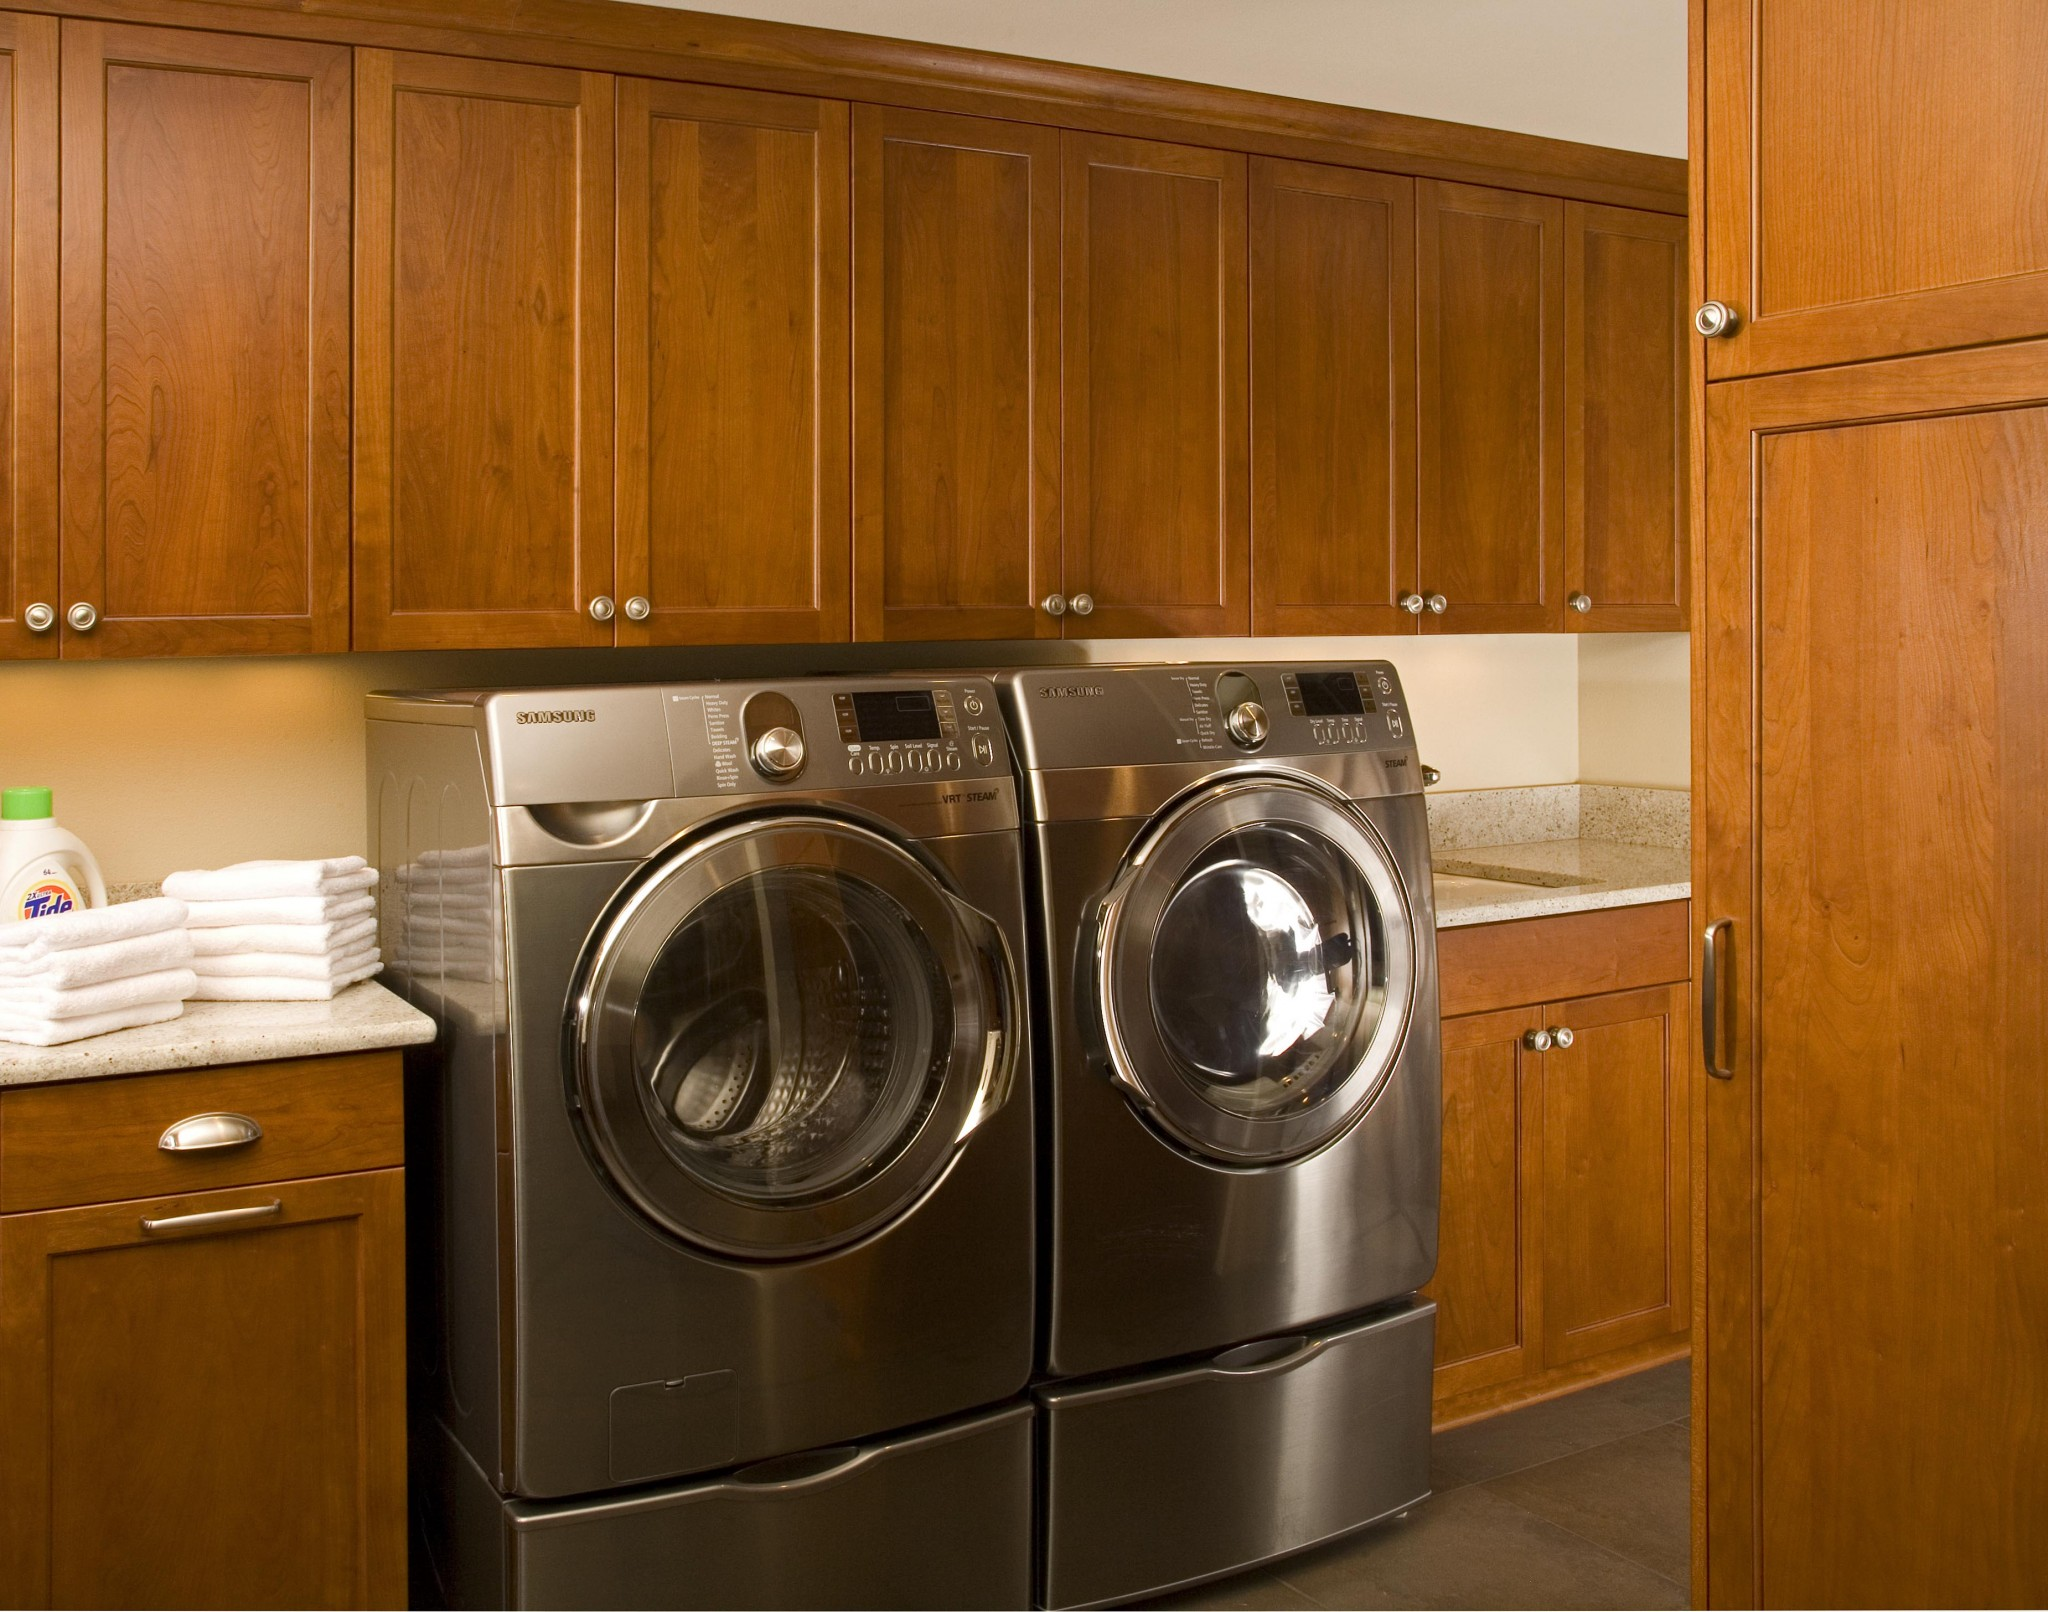 Laundry Room | M.R. Construction | Tacoma, WA